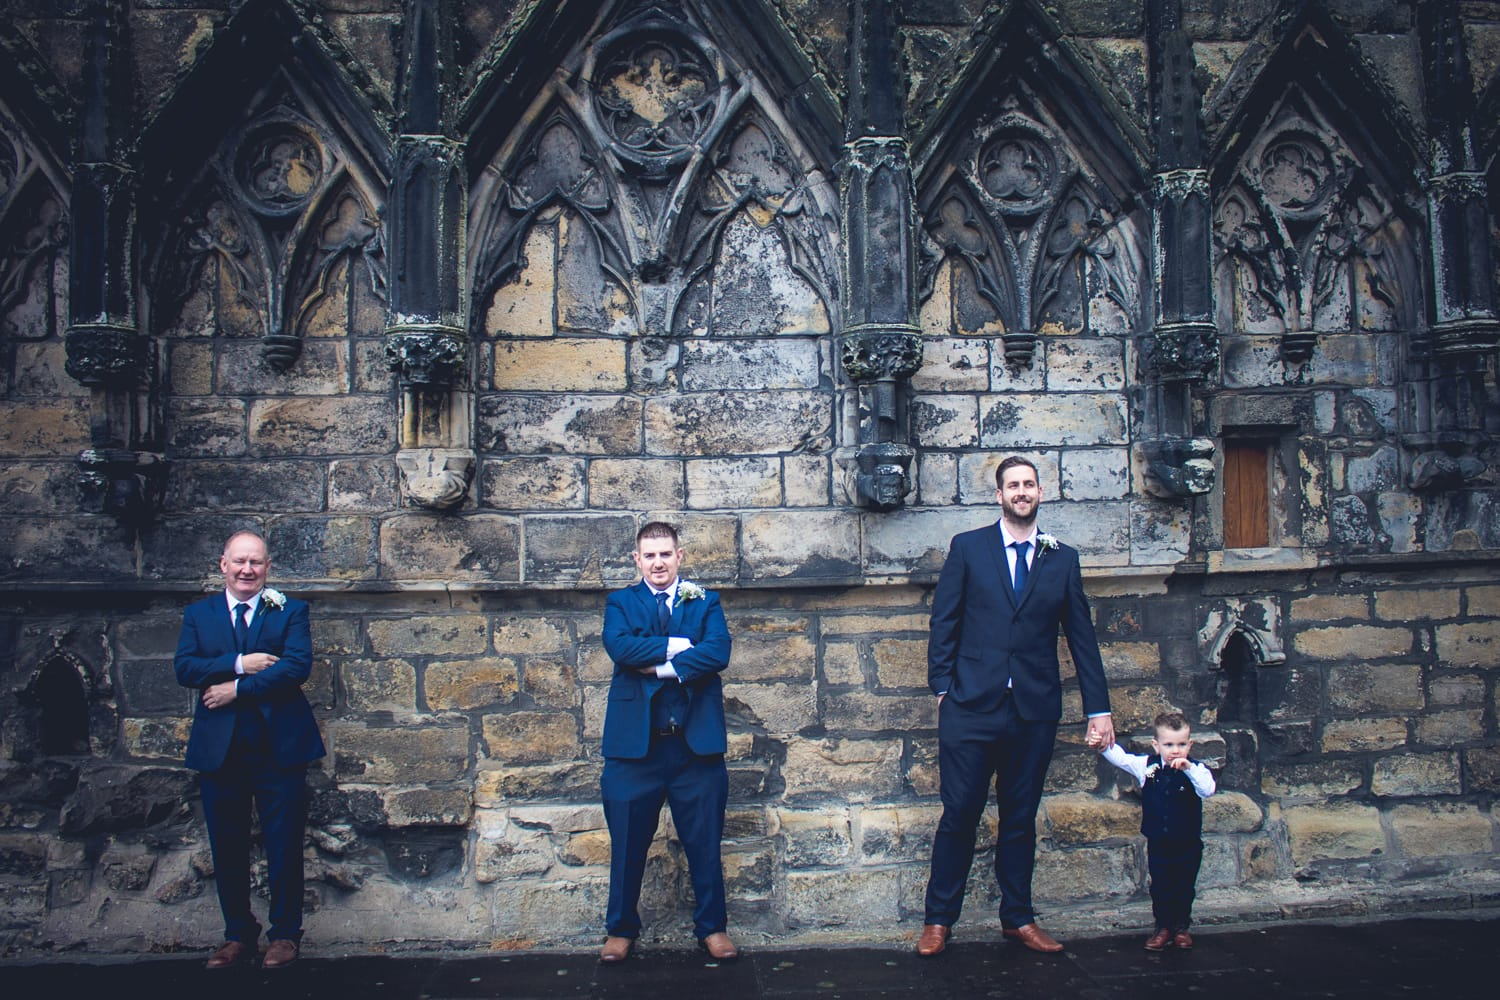 Hexham Abbey Wedding, groomsmen